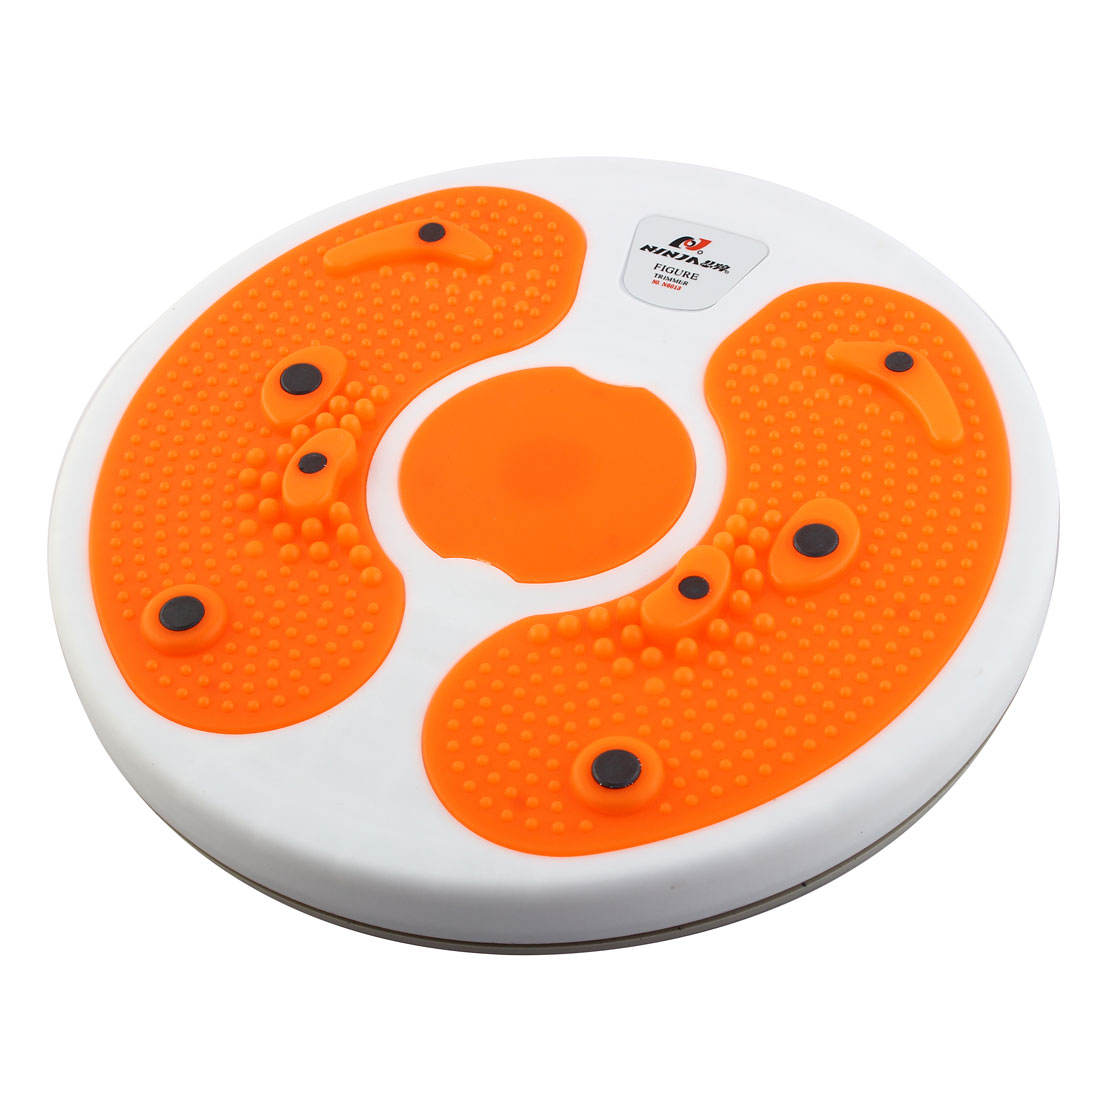 Foot Massage Magnetic Figure Twister Trimmer Waist Exercise Orange